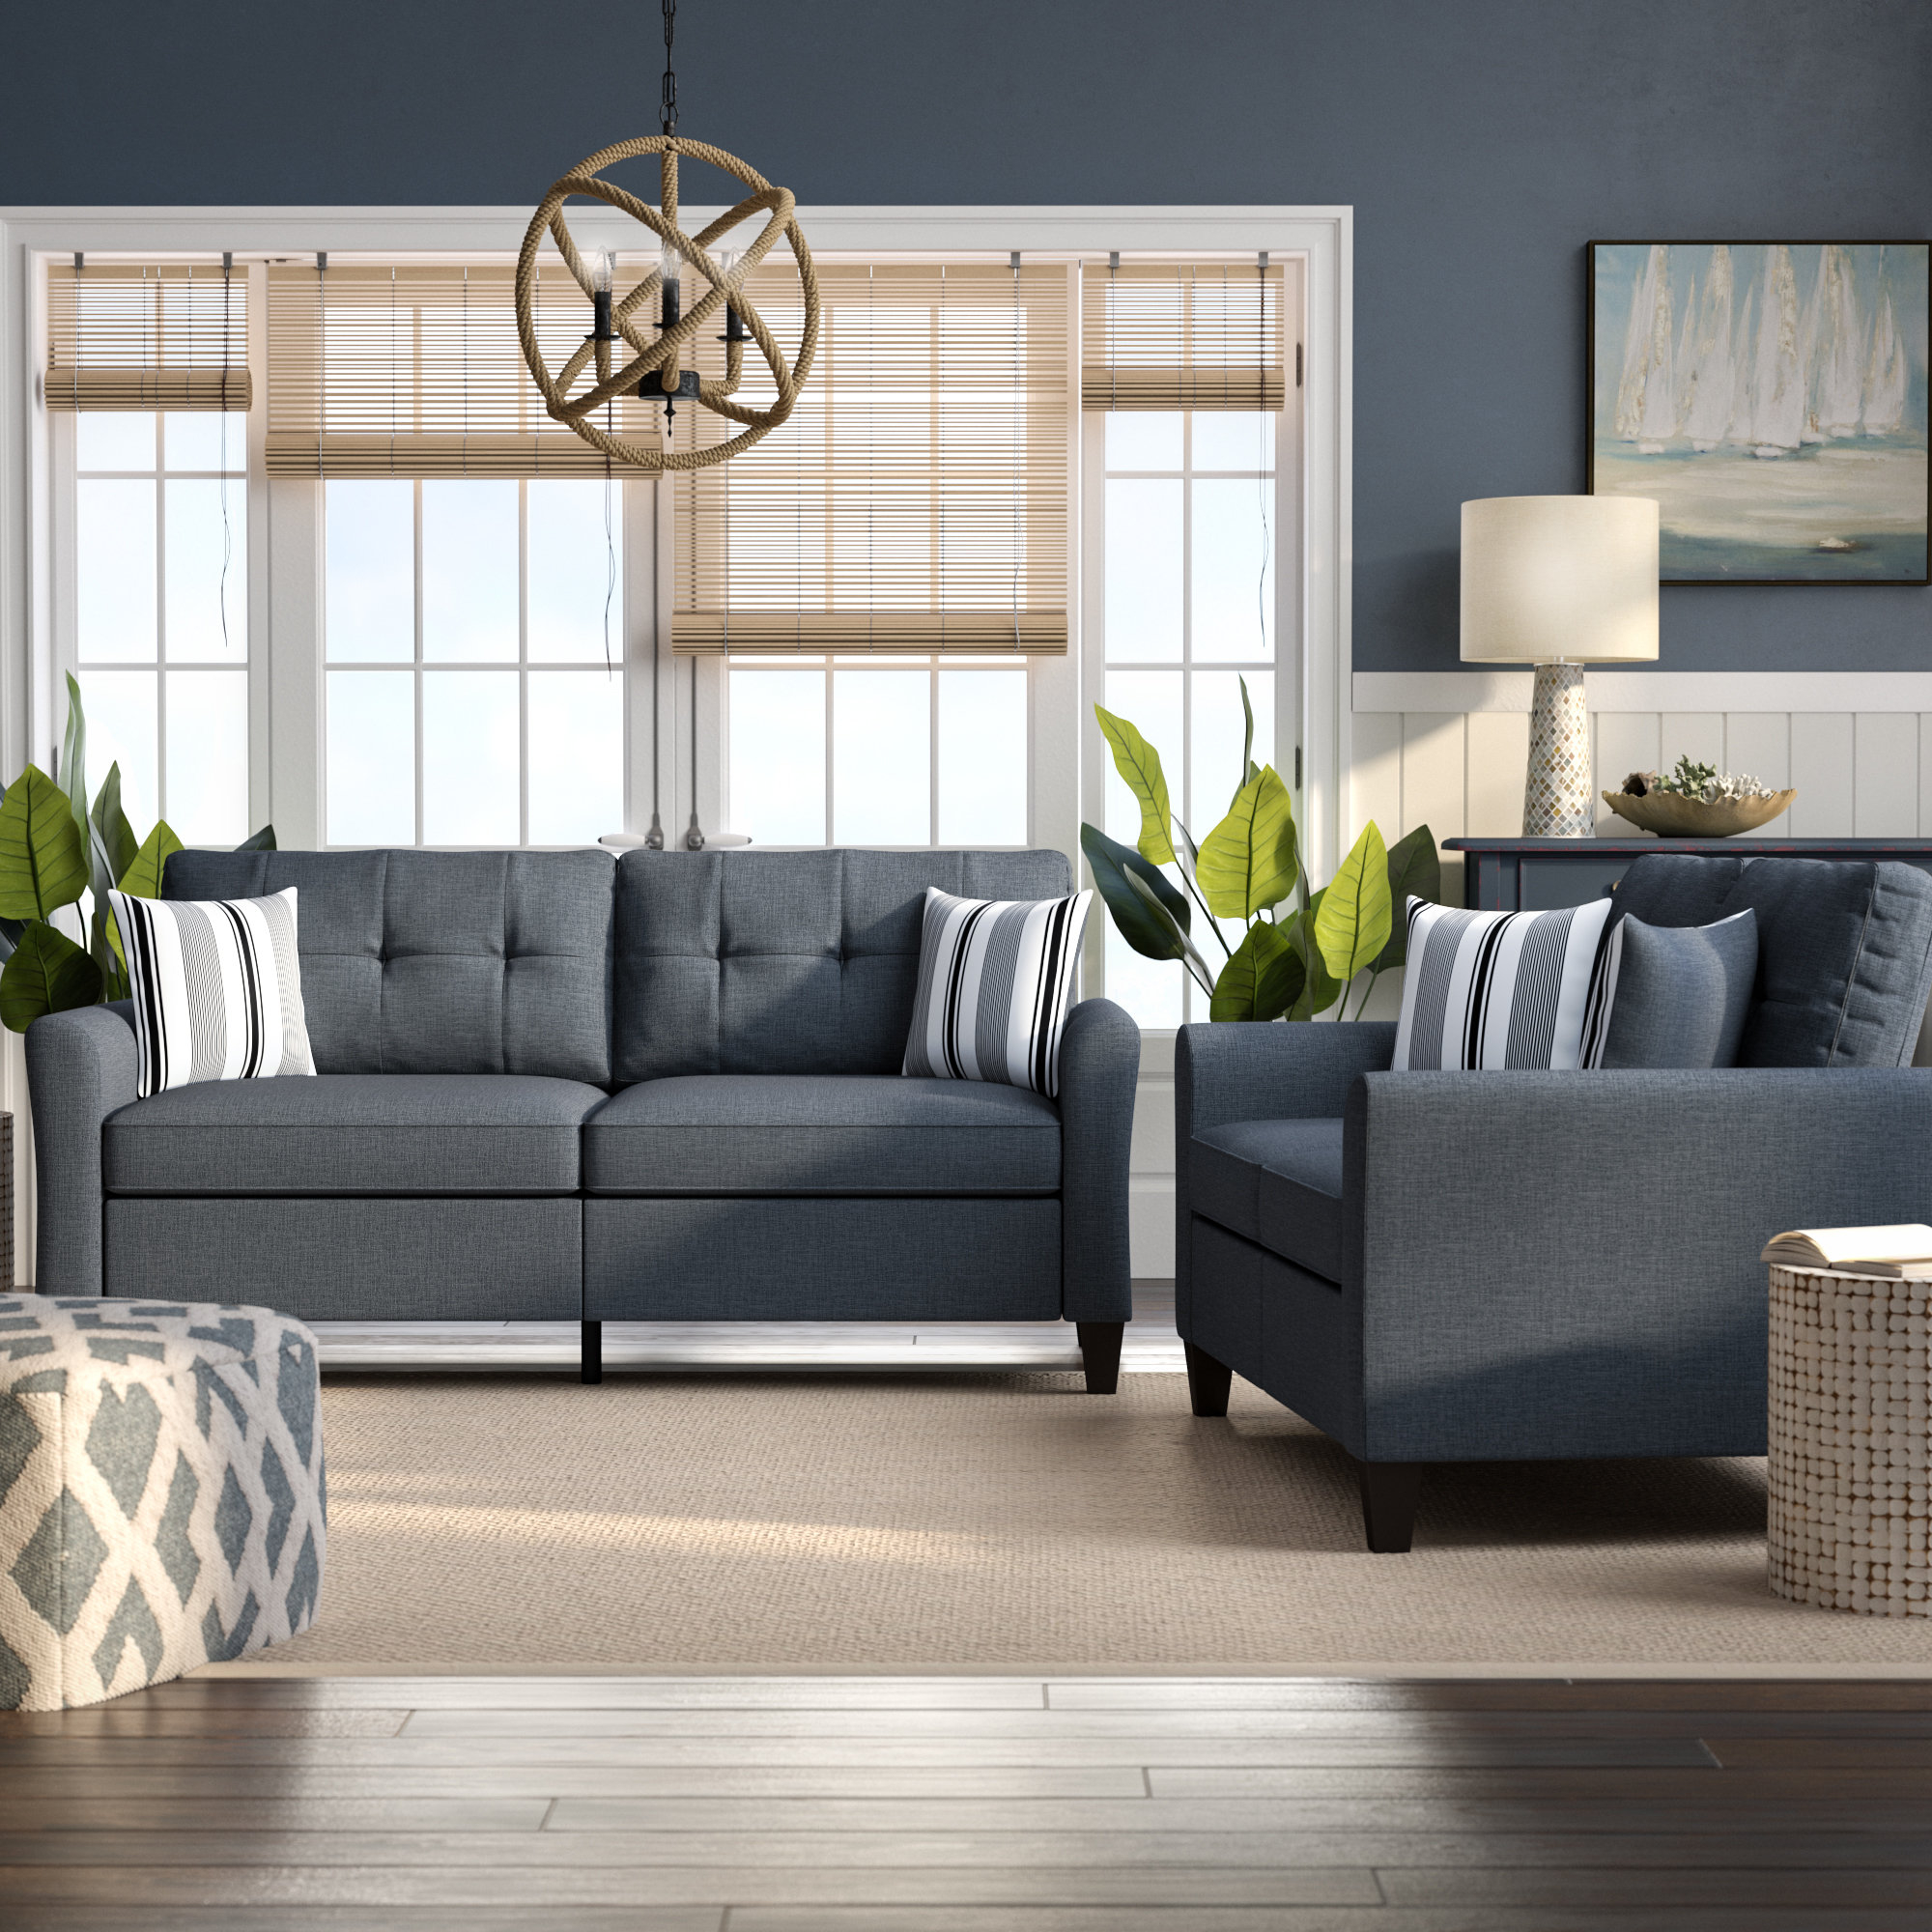 Breakwater Bay Wolfram 2 Piece Living Room Set Reviews Wayfair with regard to 10 Awesome Ideas How to Improve Living Room Set For Cheap